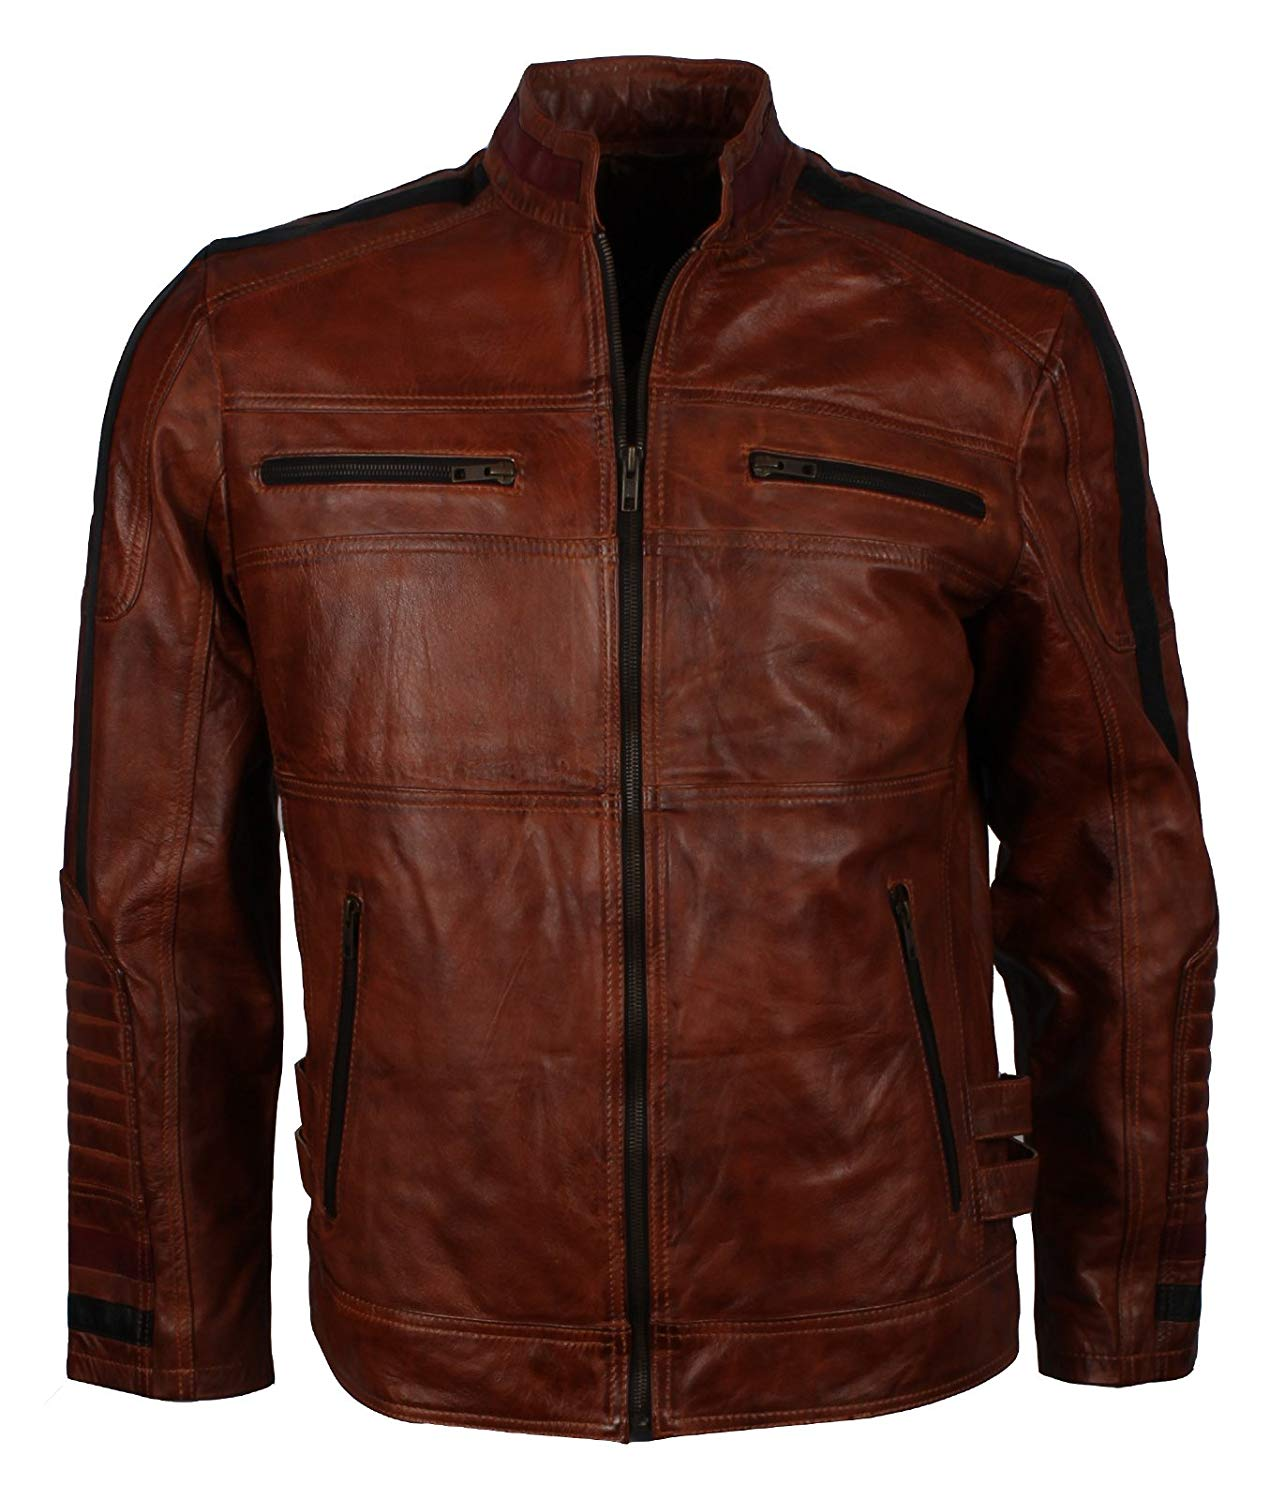 Herts Leather Authentic Cafe Racer Biker Style Mens Real Leather Jacket- Best SELLER